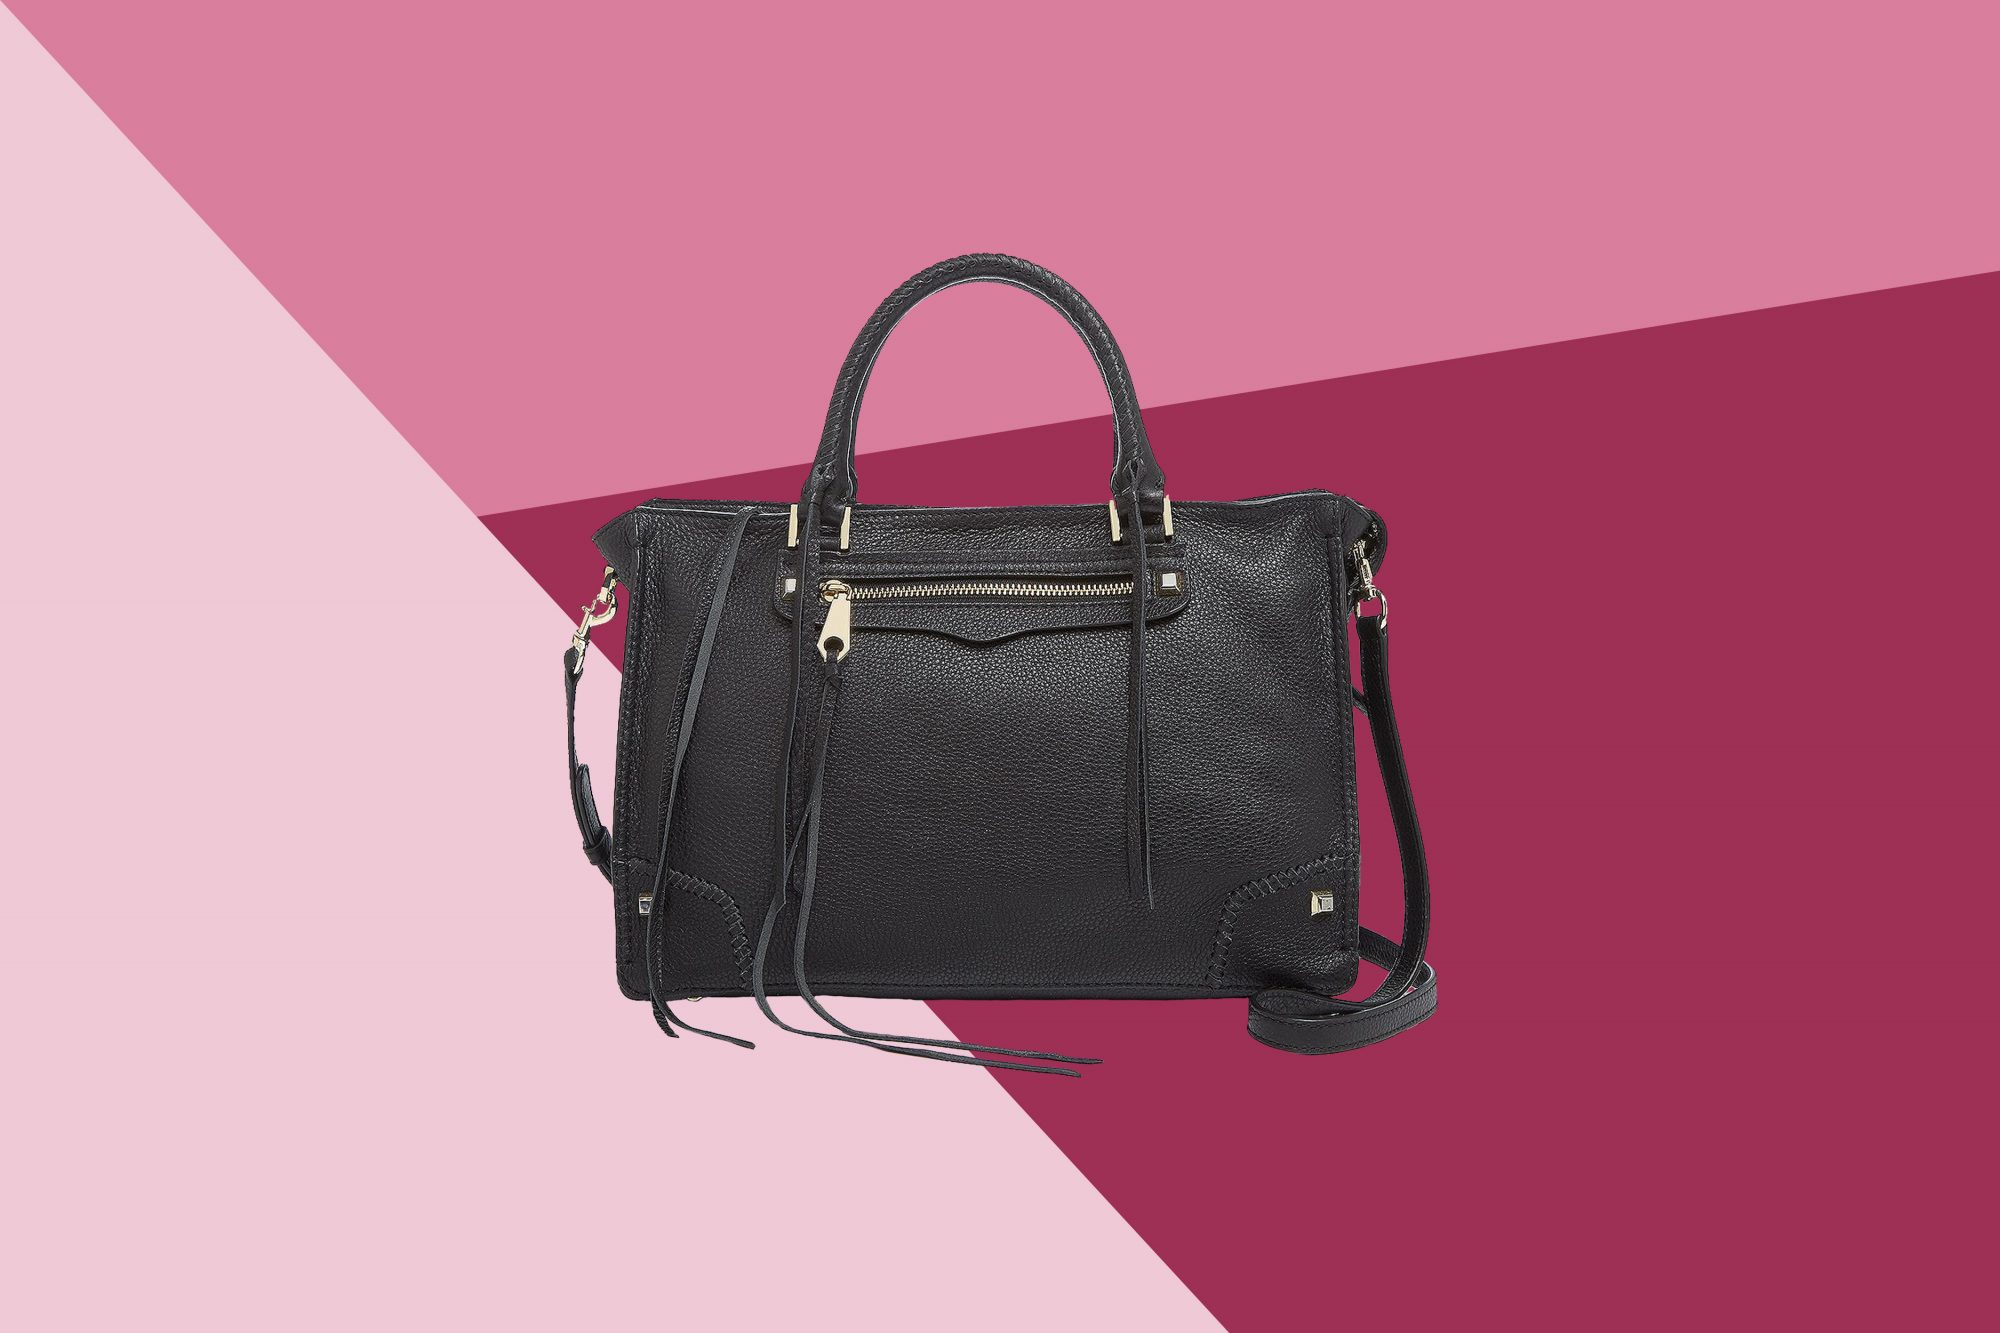 80b9382134ae Shop the Rebecca Minkoff Regan Leather Satchel from Bloomingdale's ...